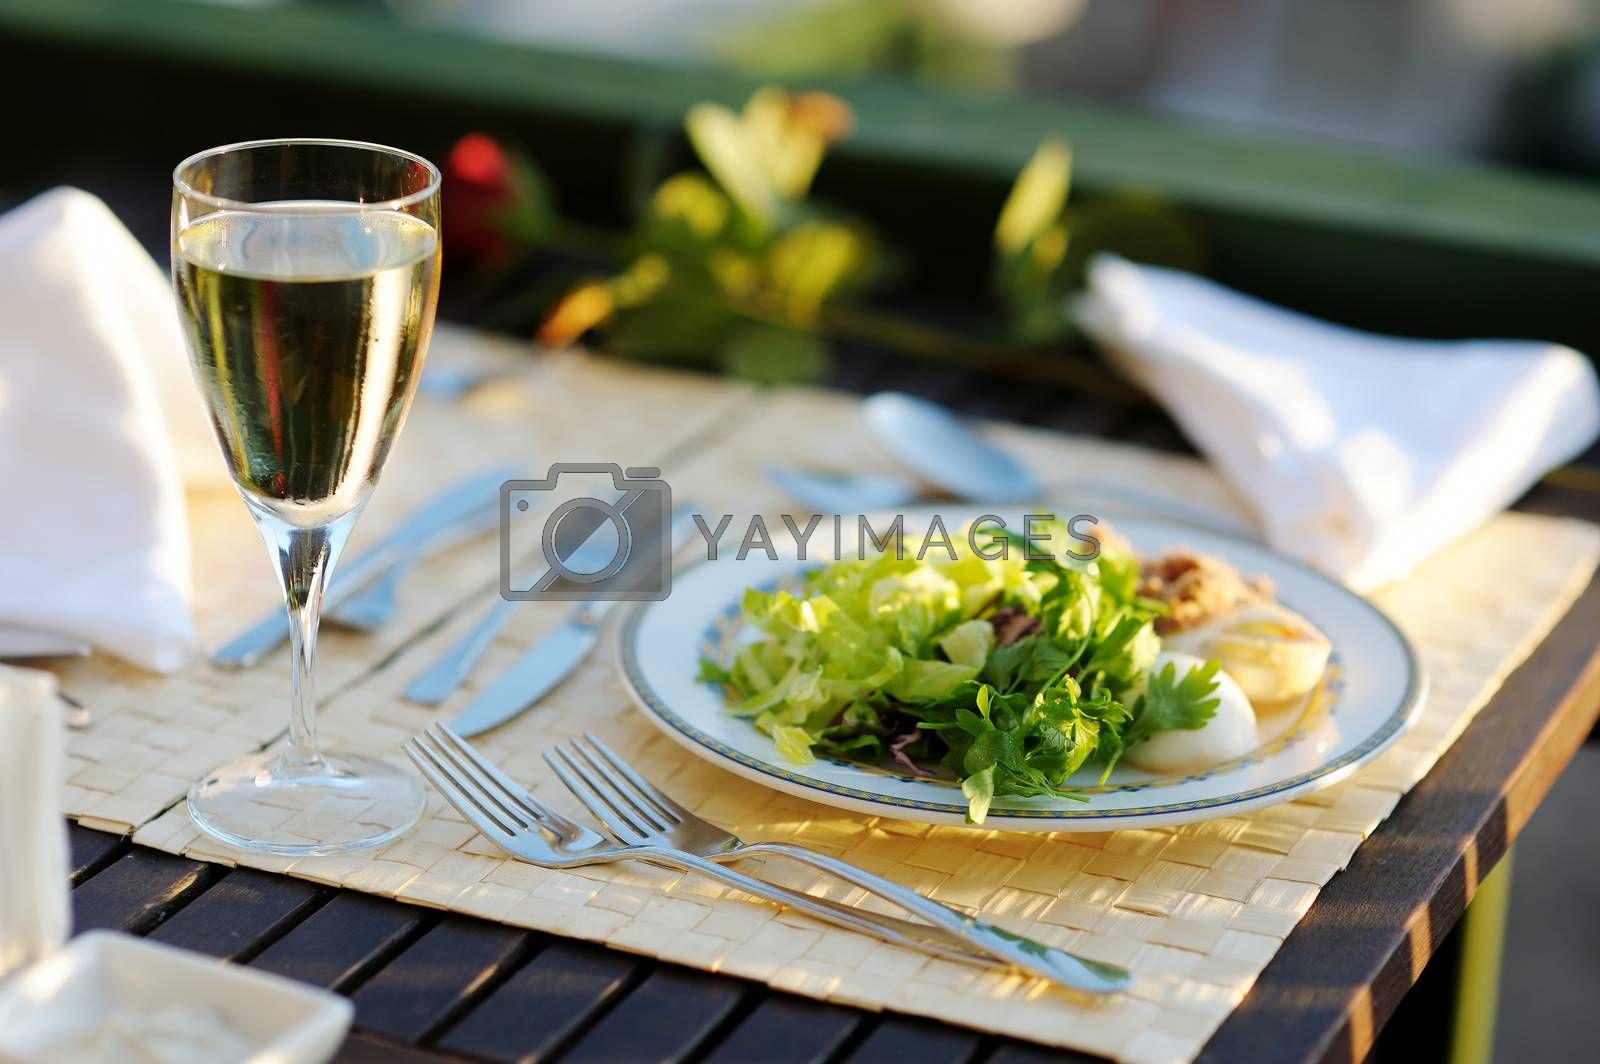 Delicious lettuce plate and glass of wine